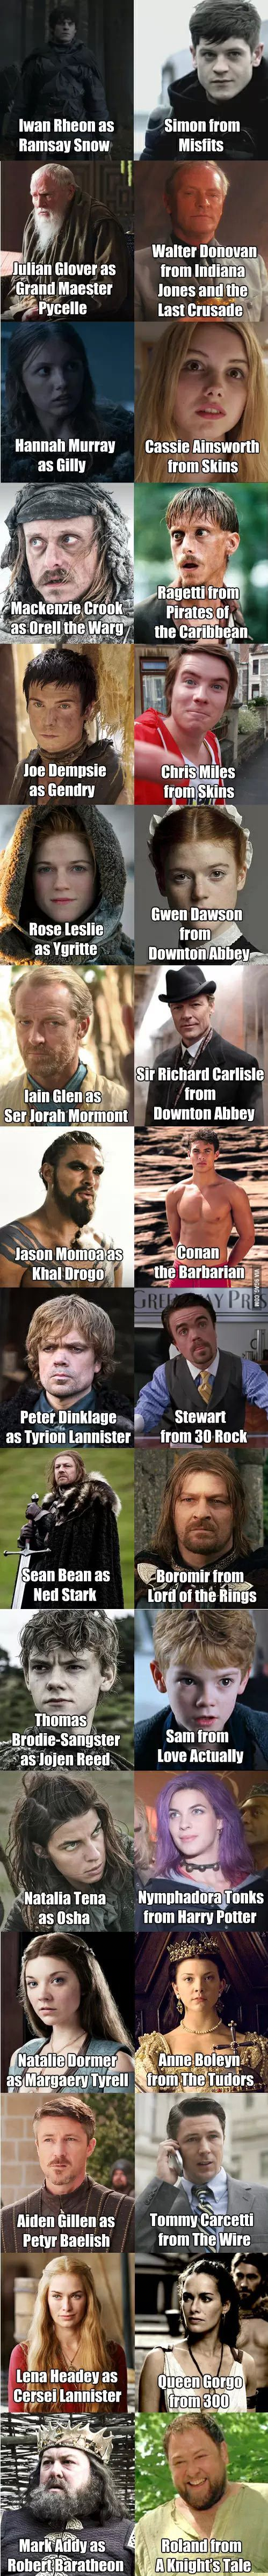 Game Of Thrones Characters From Other Shows